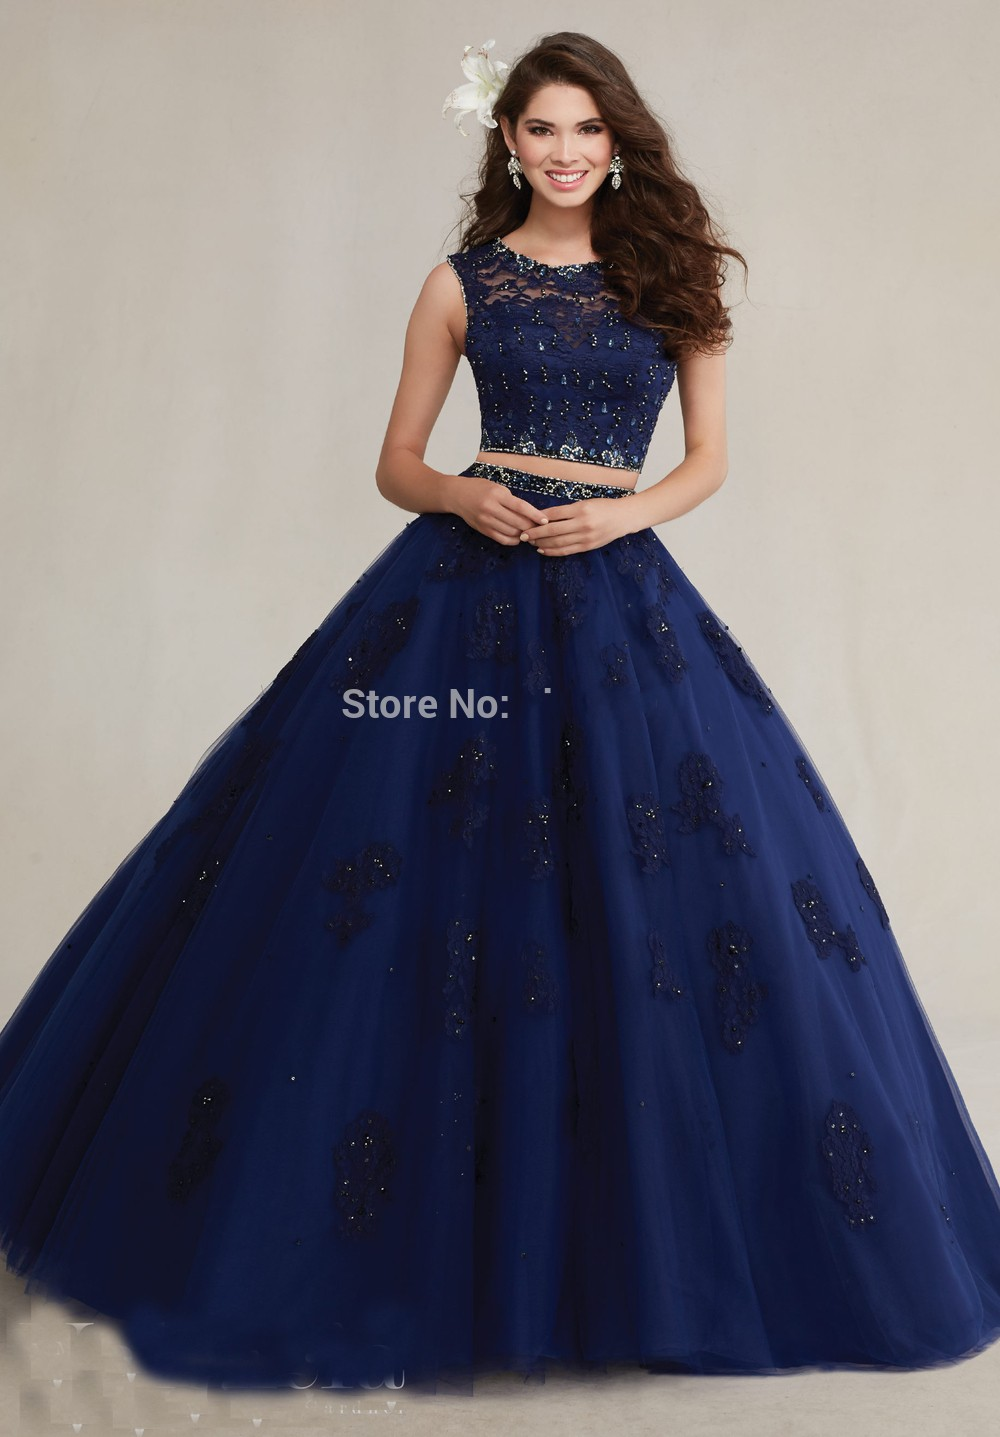 2016 High Neck Beaded Lace Appliques Prom Dress Navy Blue Sweet 16